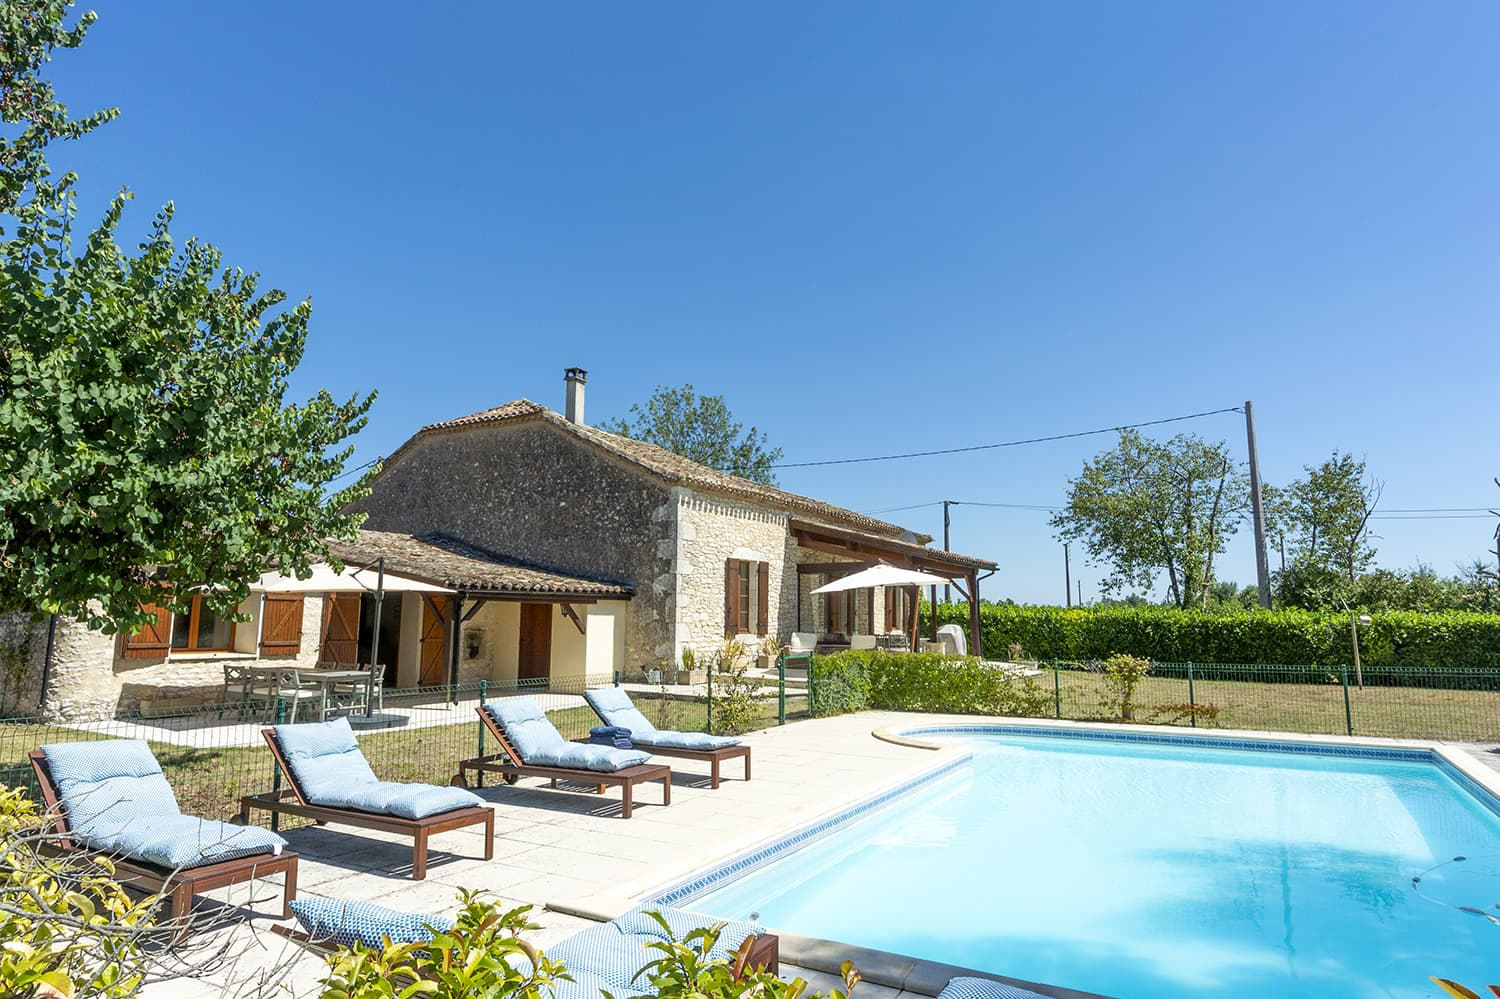 Holiday home in Monflanquin, Nouvelle-Aquitaine with private pool